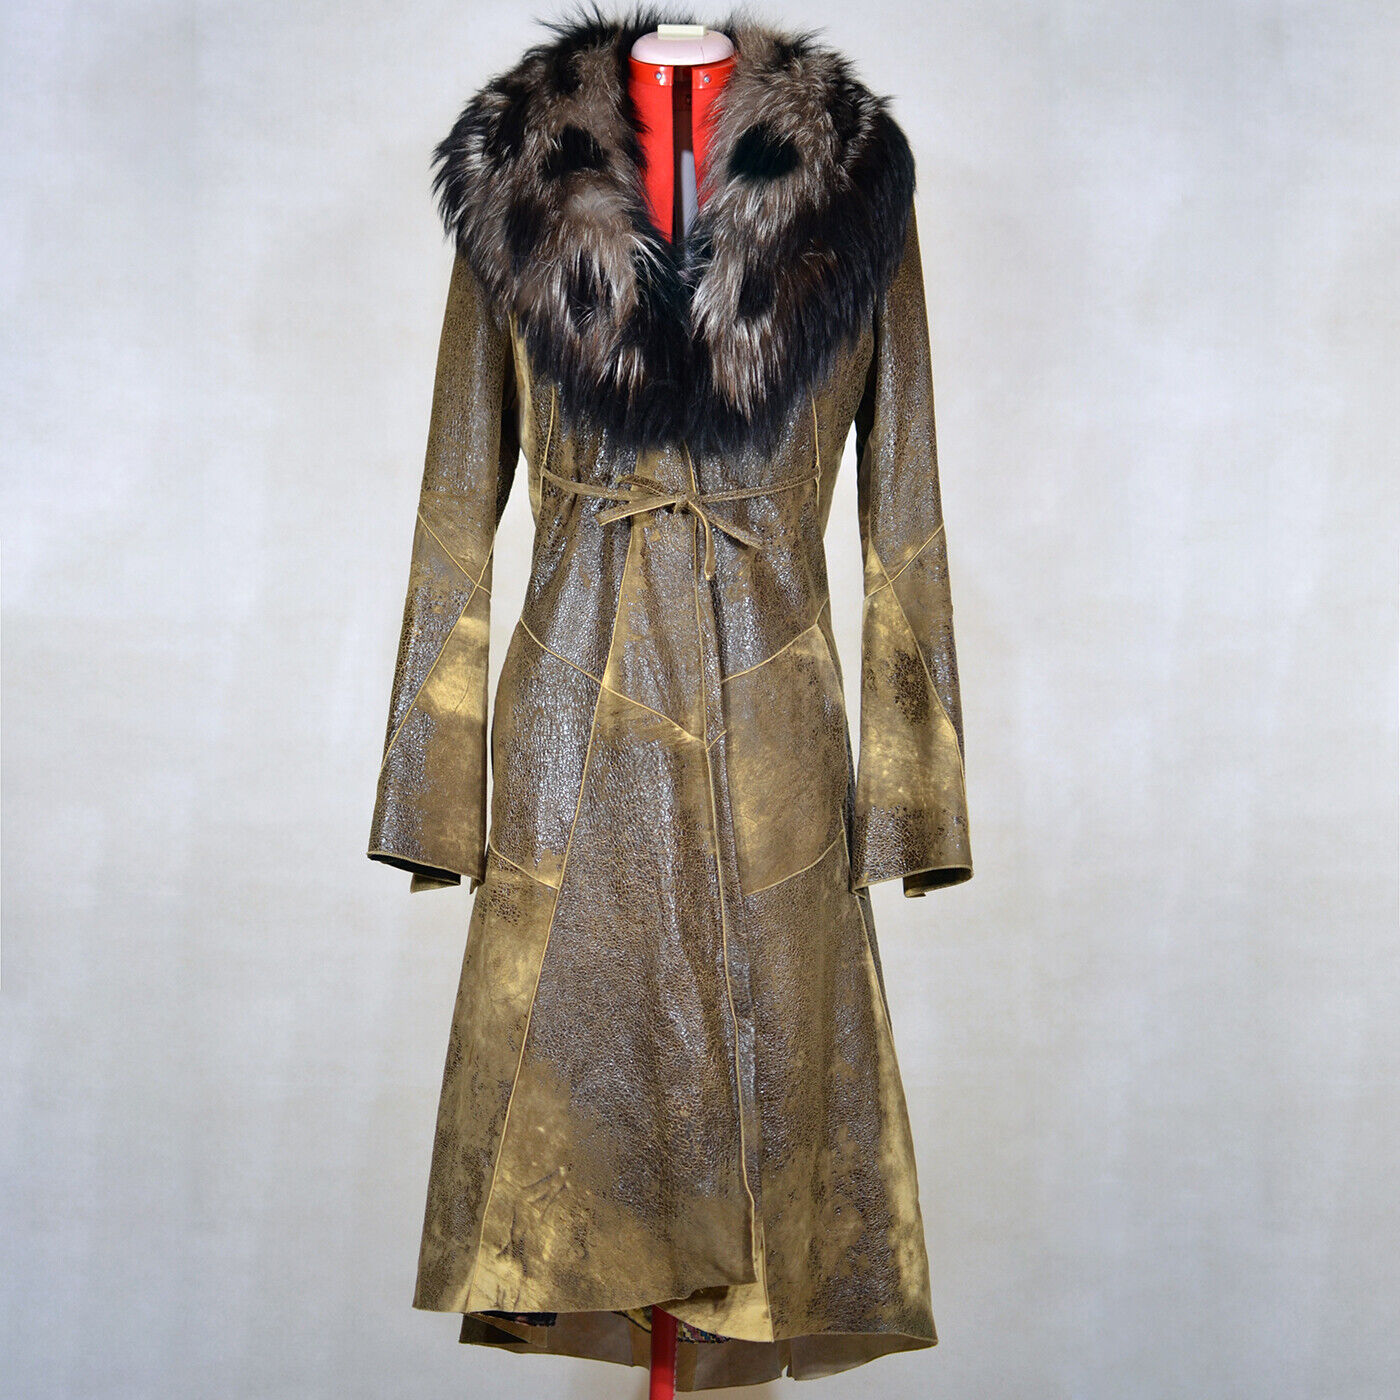 ROBERTO CAVALLI Womens Brown Leather Coat with Fox Collar Size M